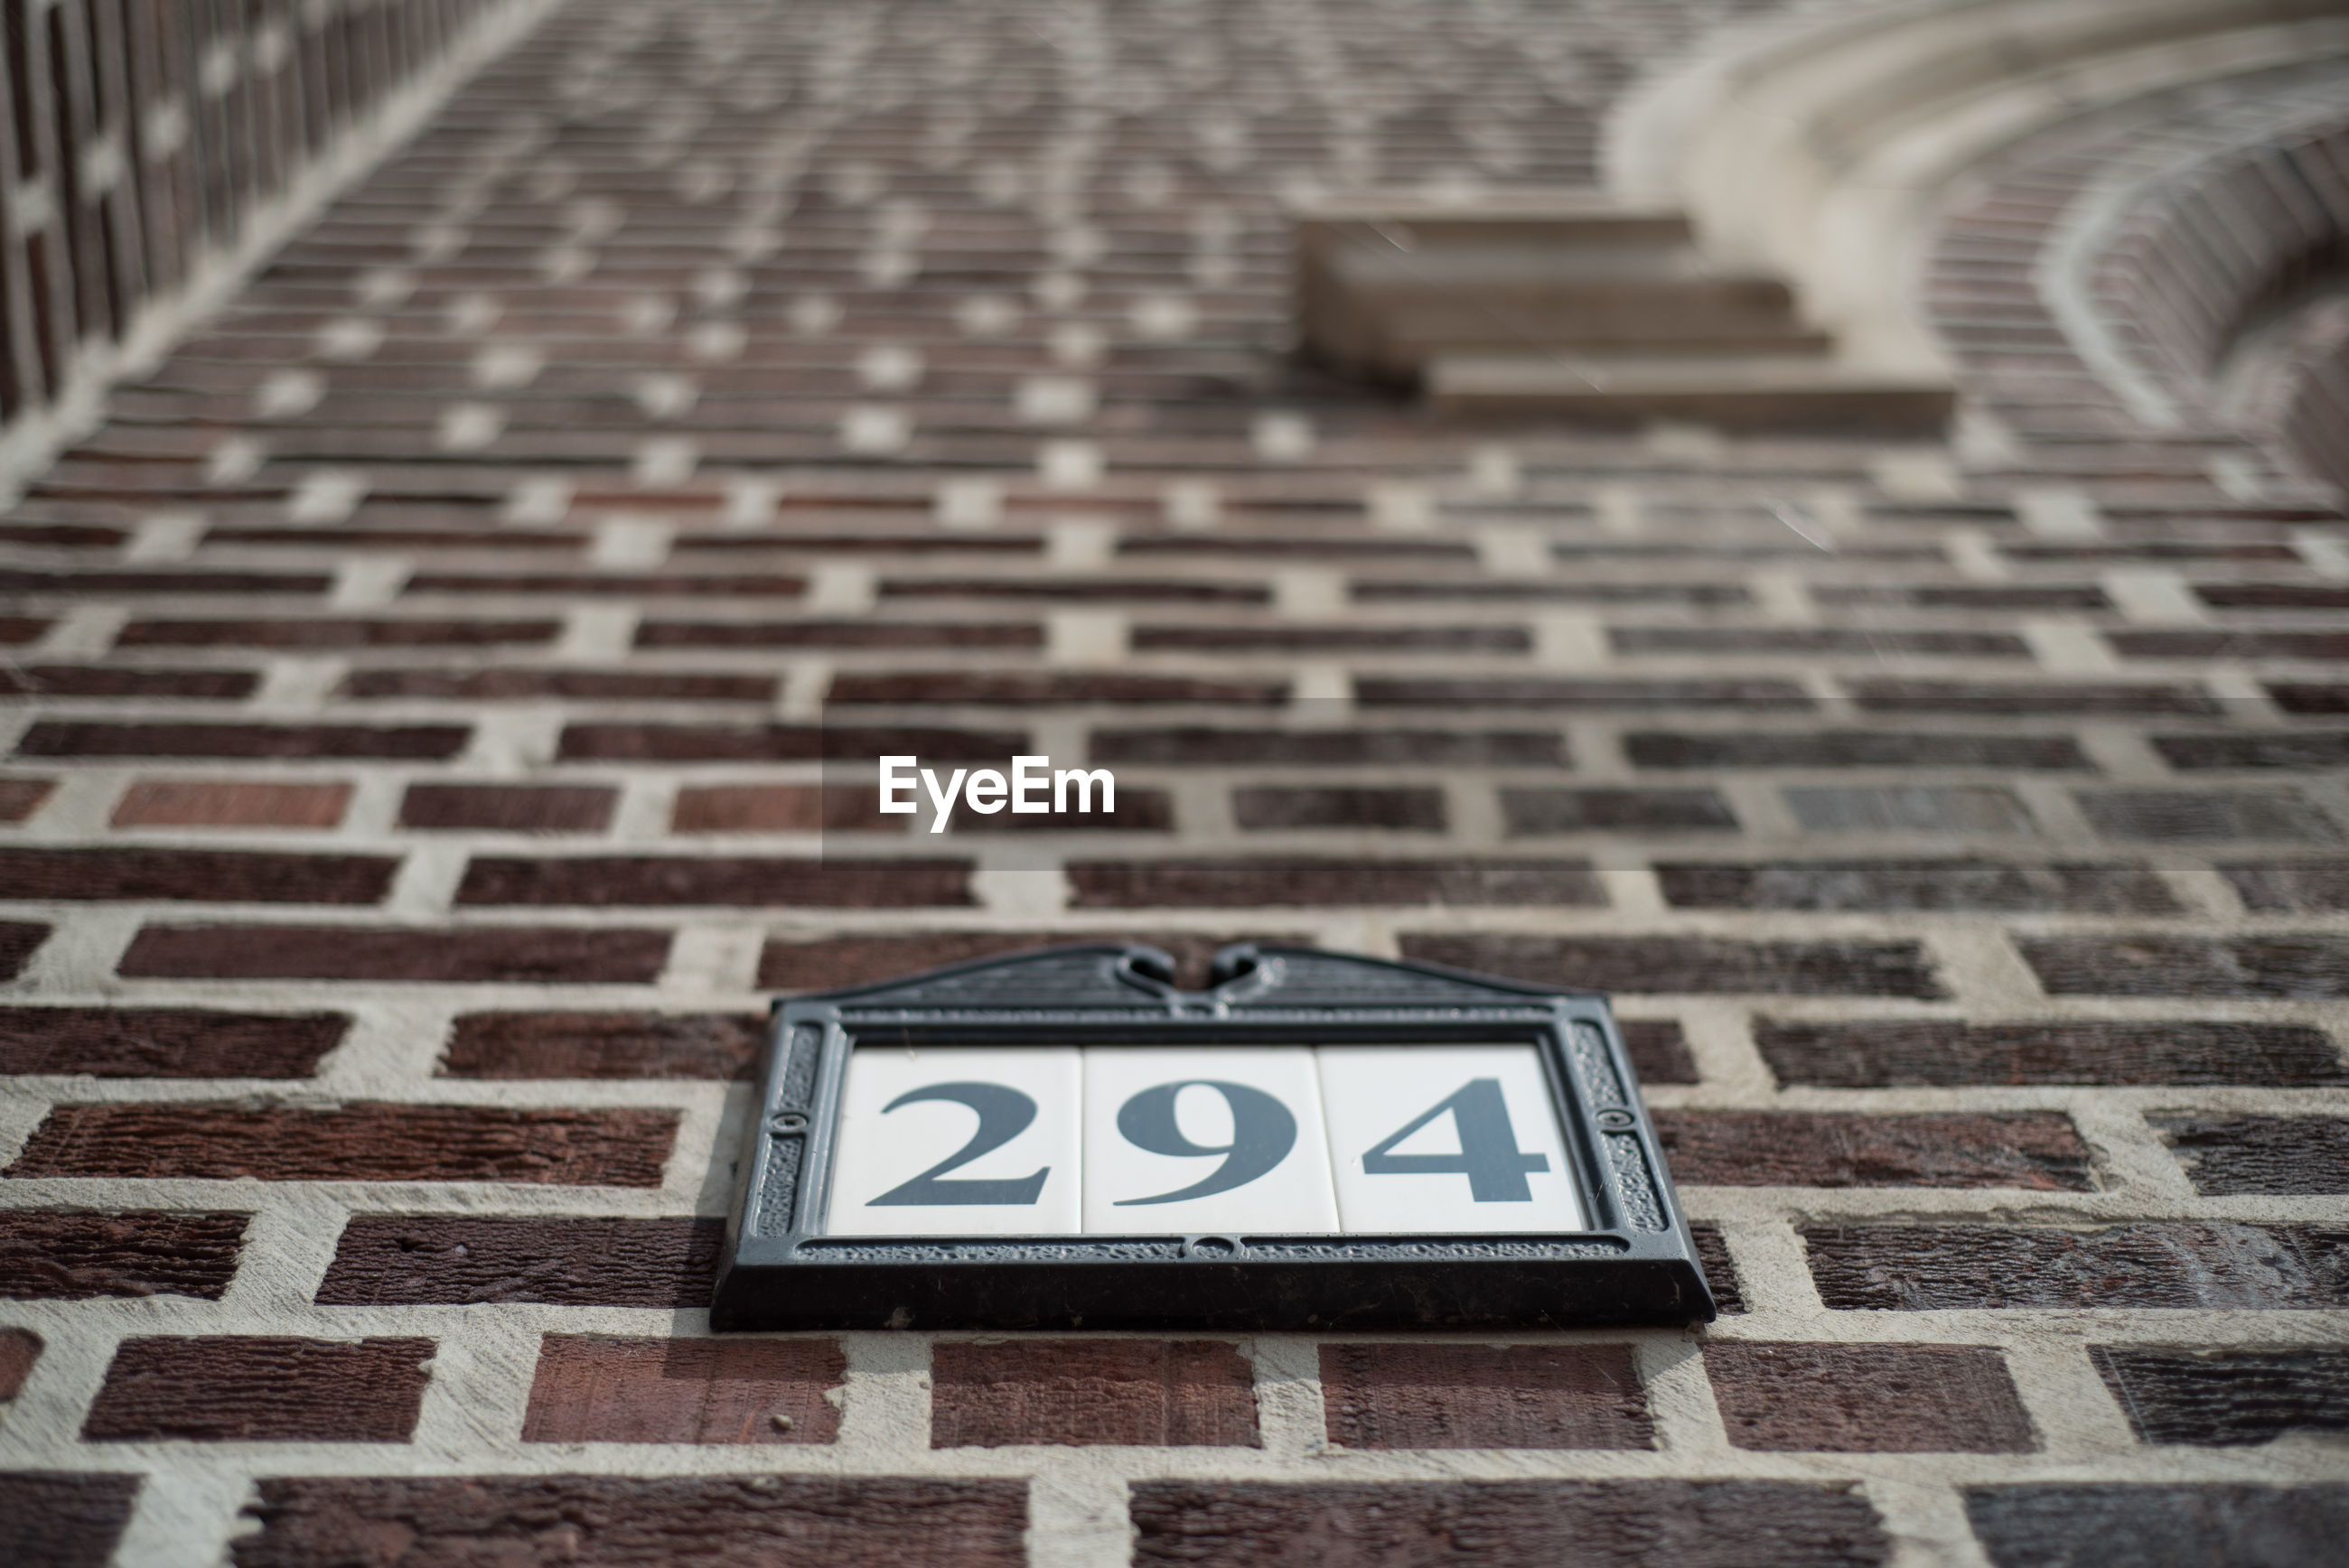 Low angle view of number on building wall